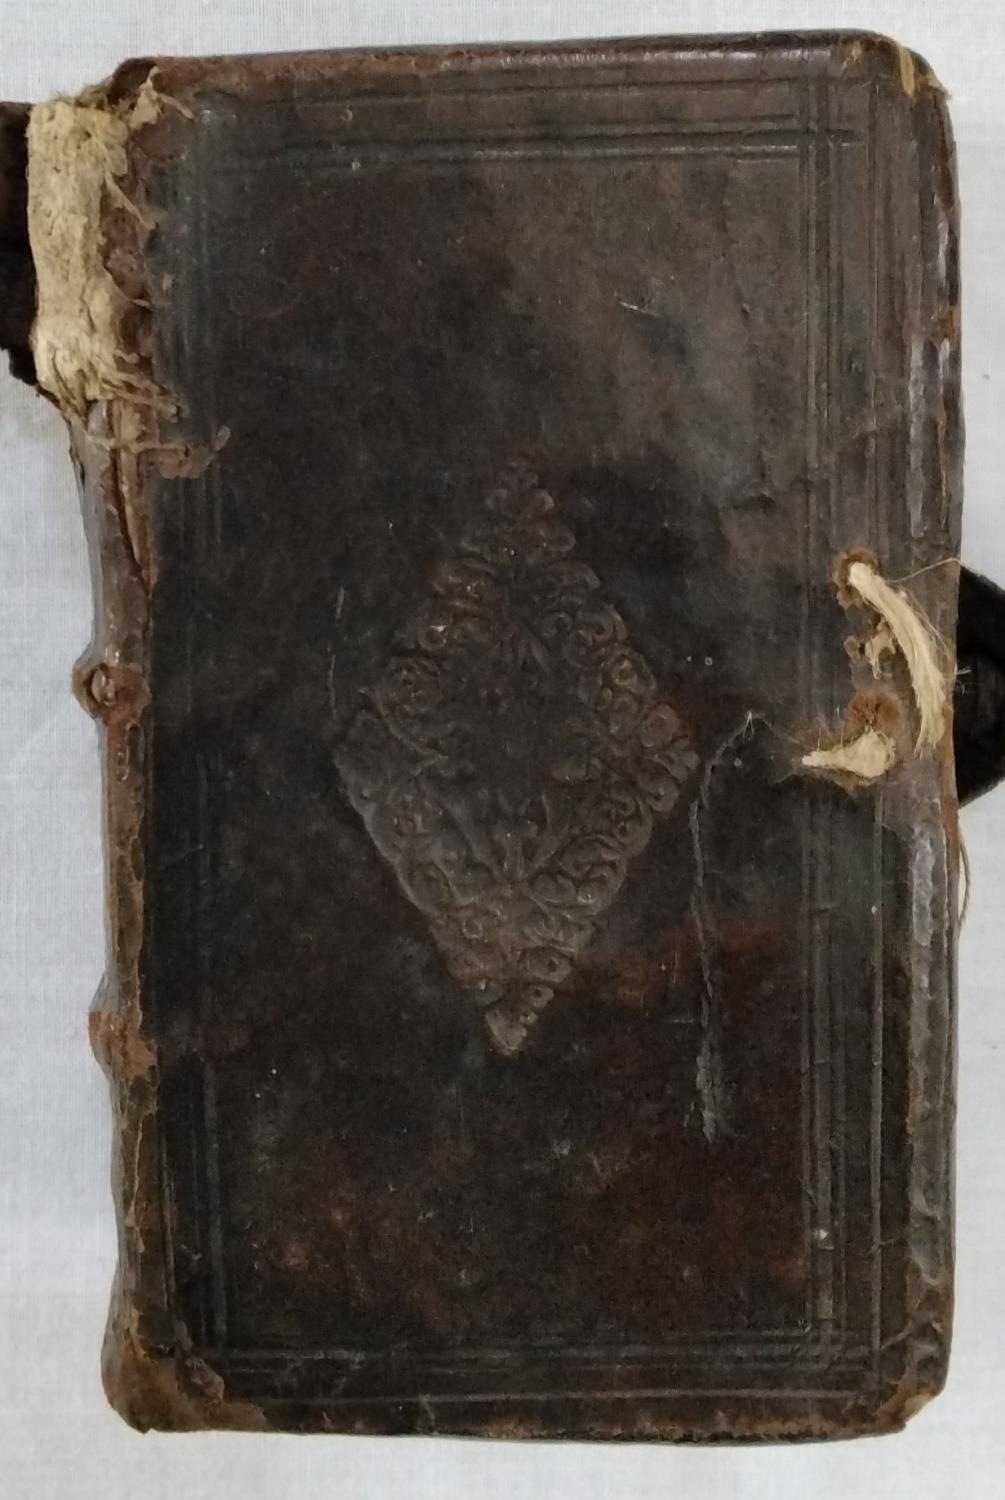 Raleigh, Sir, Walter, Instruction to his son and posterity, second edition, printed for Benjamin - Image 3 of 3